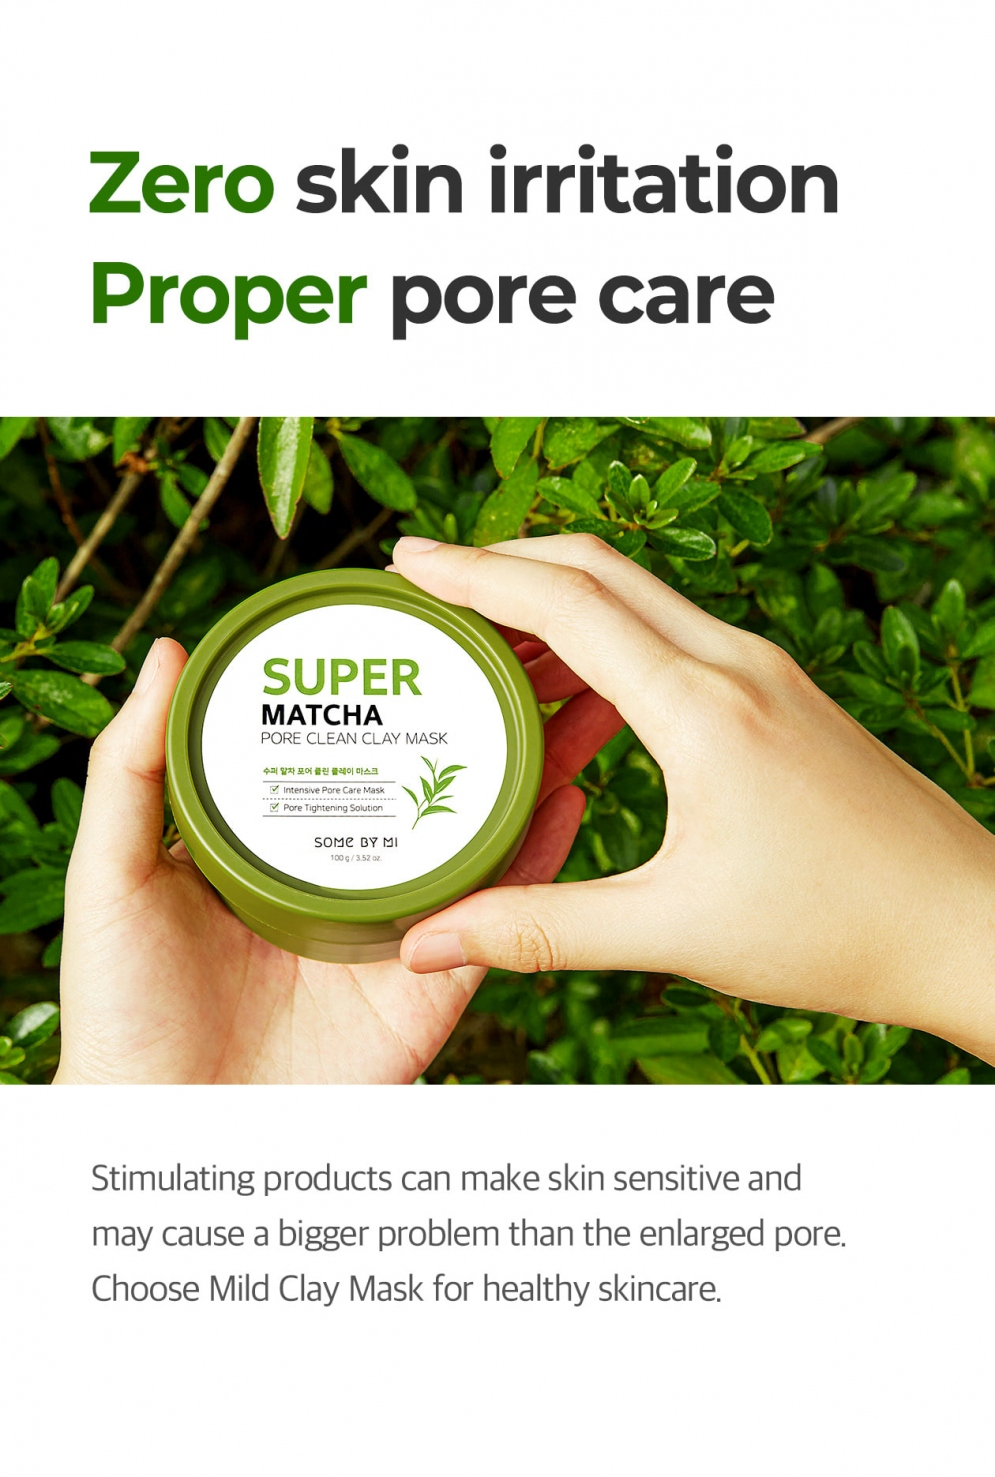 SOME BY MI Super Matcha Pore Clean Clay Mask | StyleKorean.com